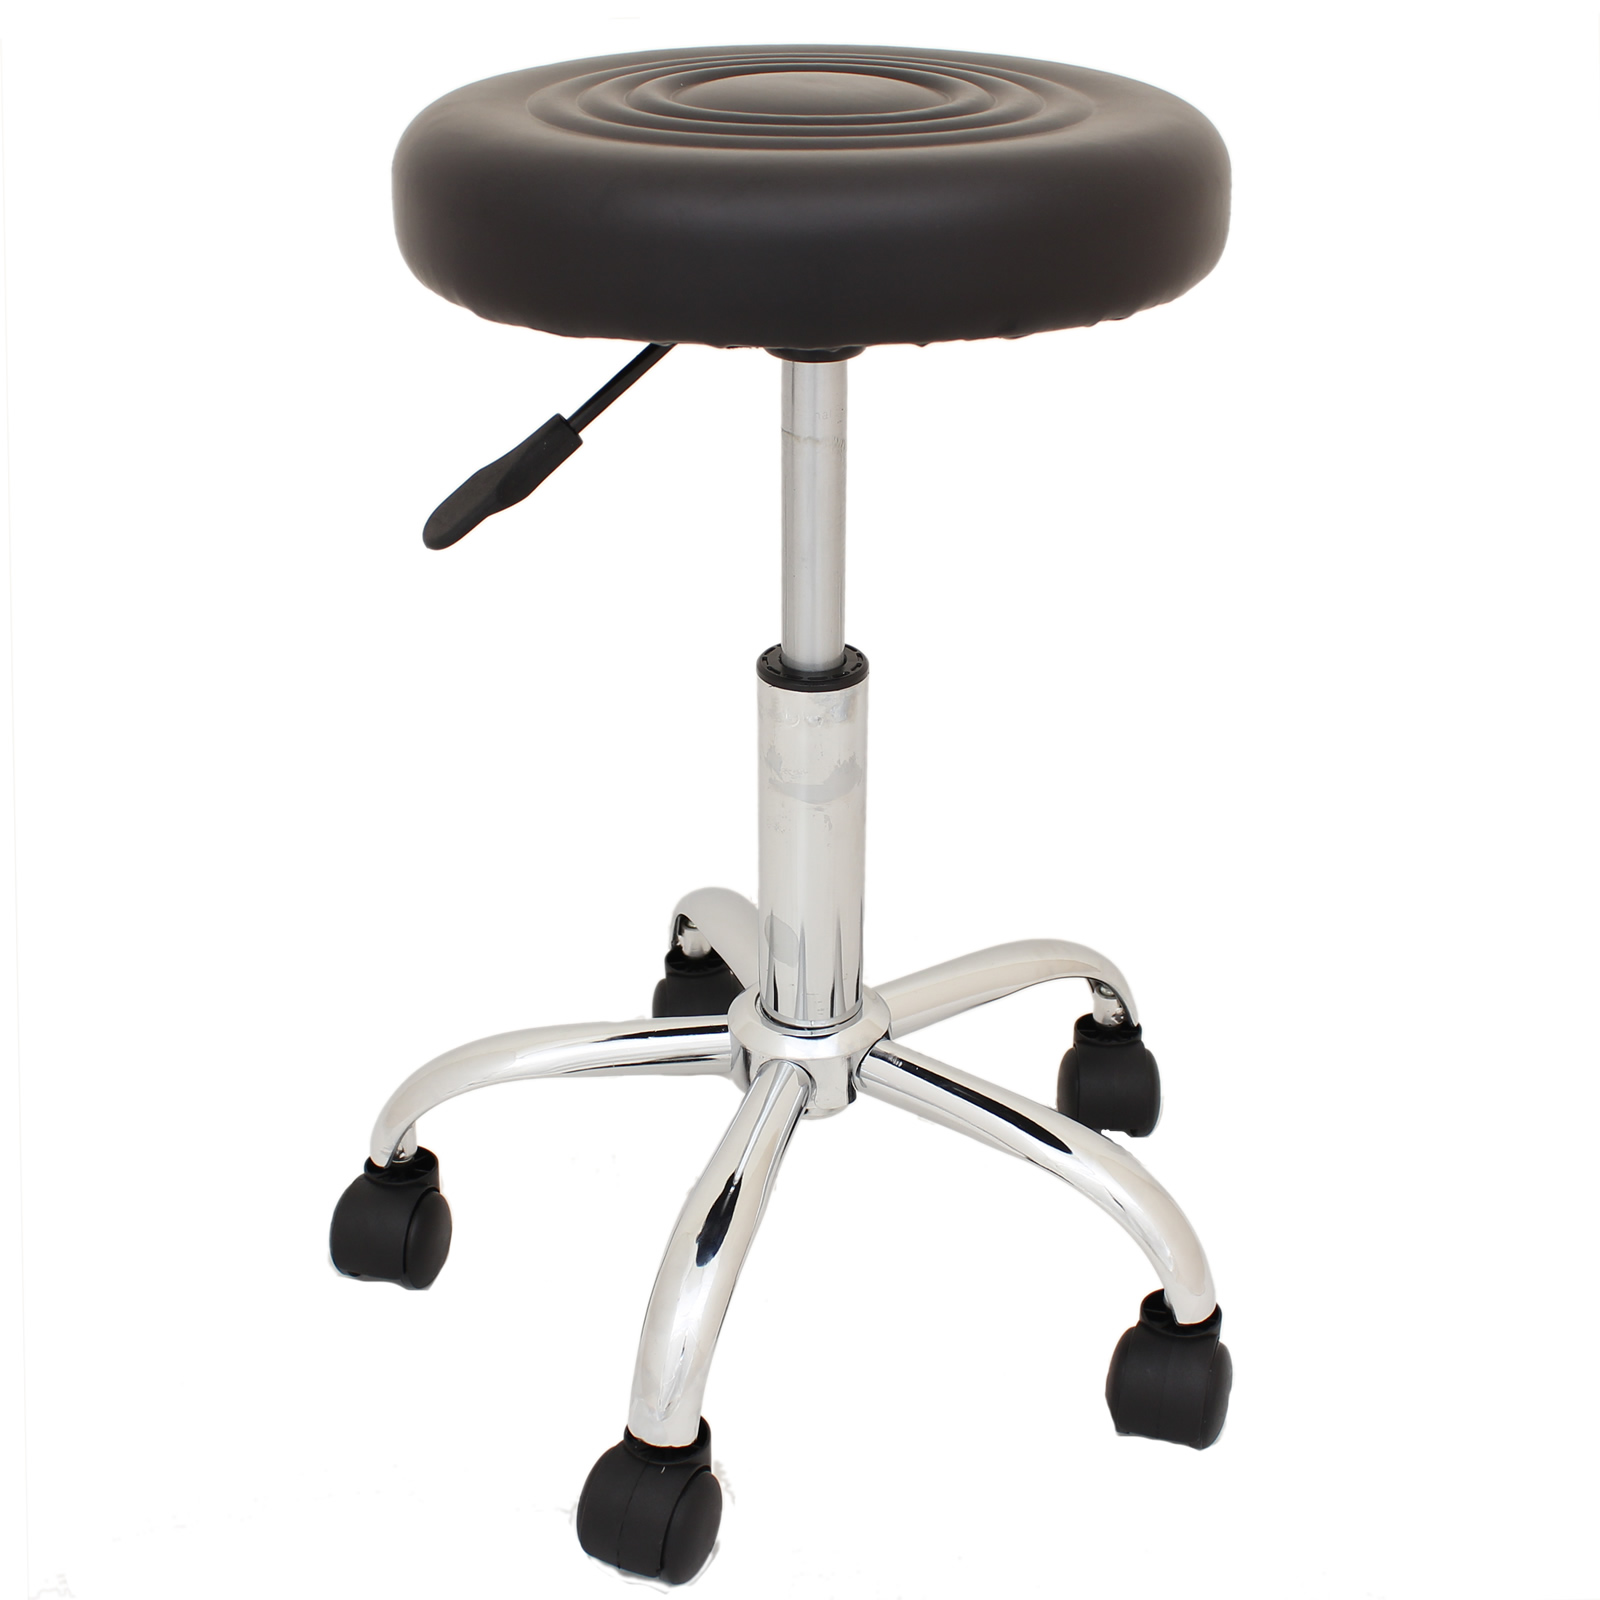 ADJUSTABLE SWIVEL CHAIR STOOL DRUMMER THRONE MUSICIANS PIANO